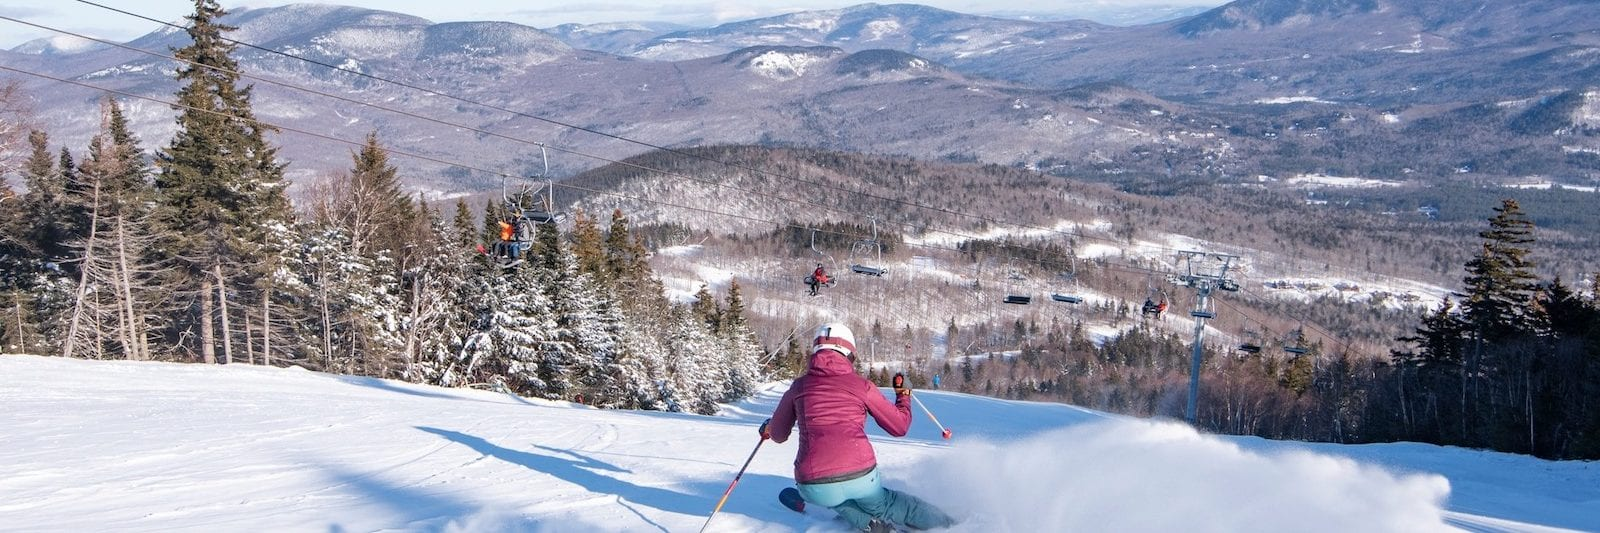 Sunday River Ski Resort, Maine